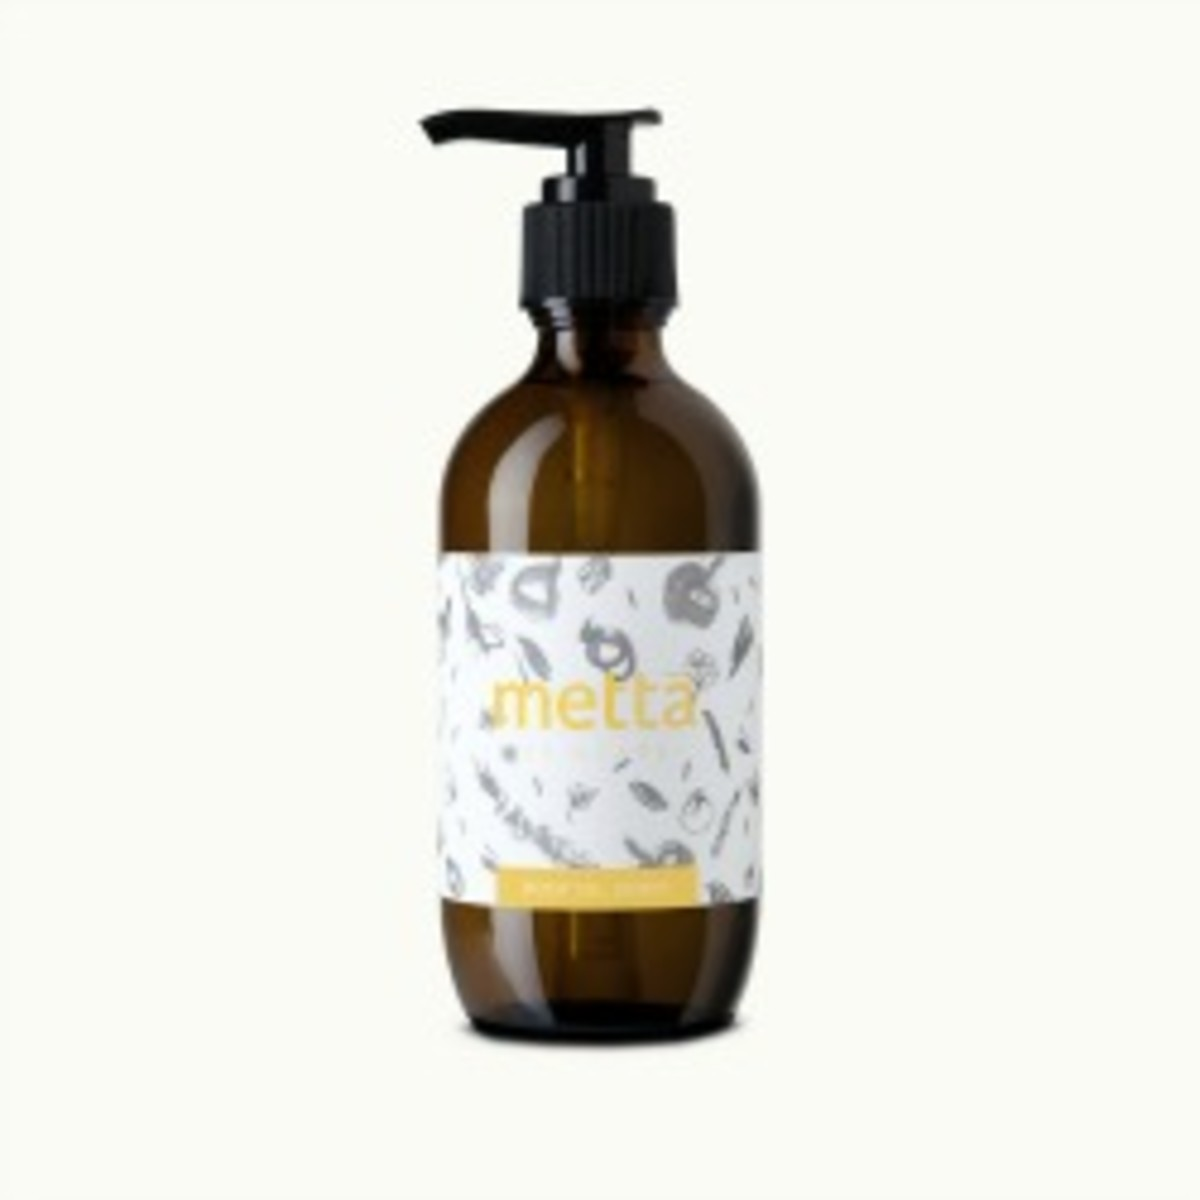 Metta Skincare Body Oil